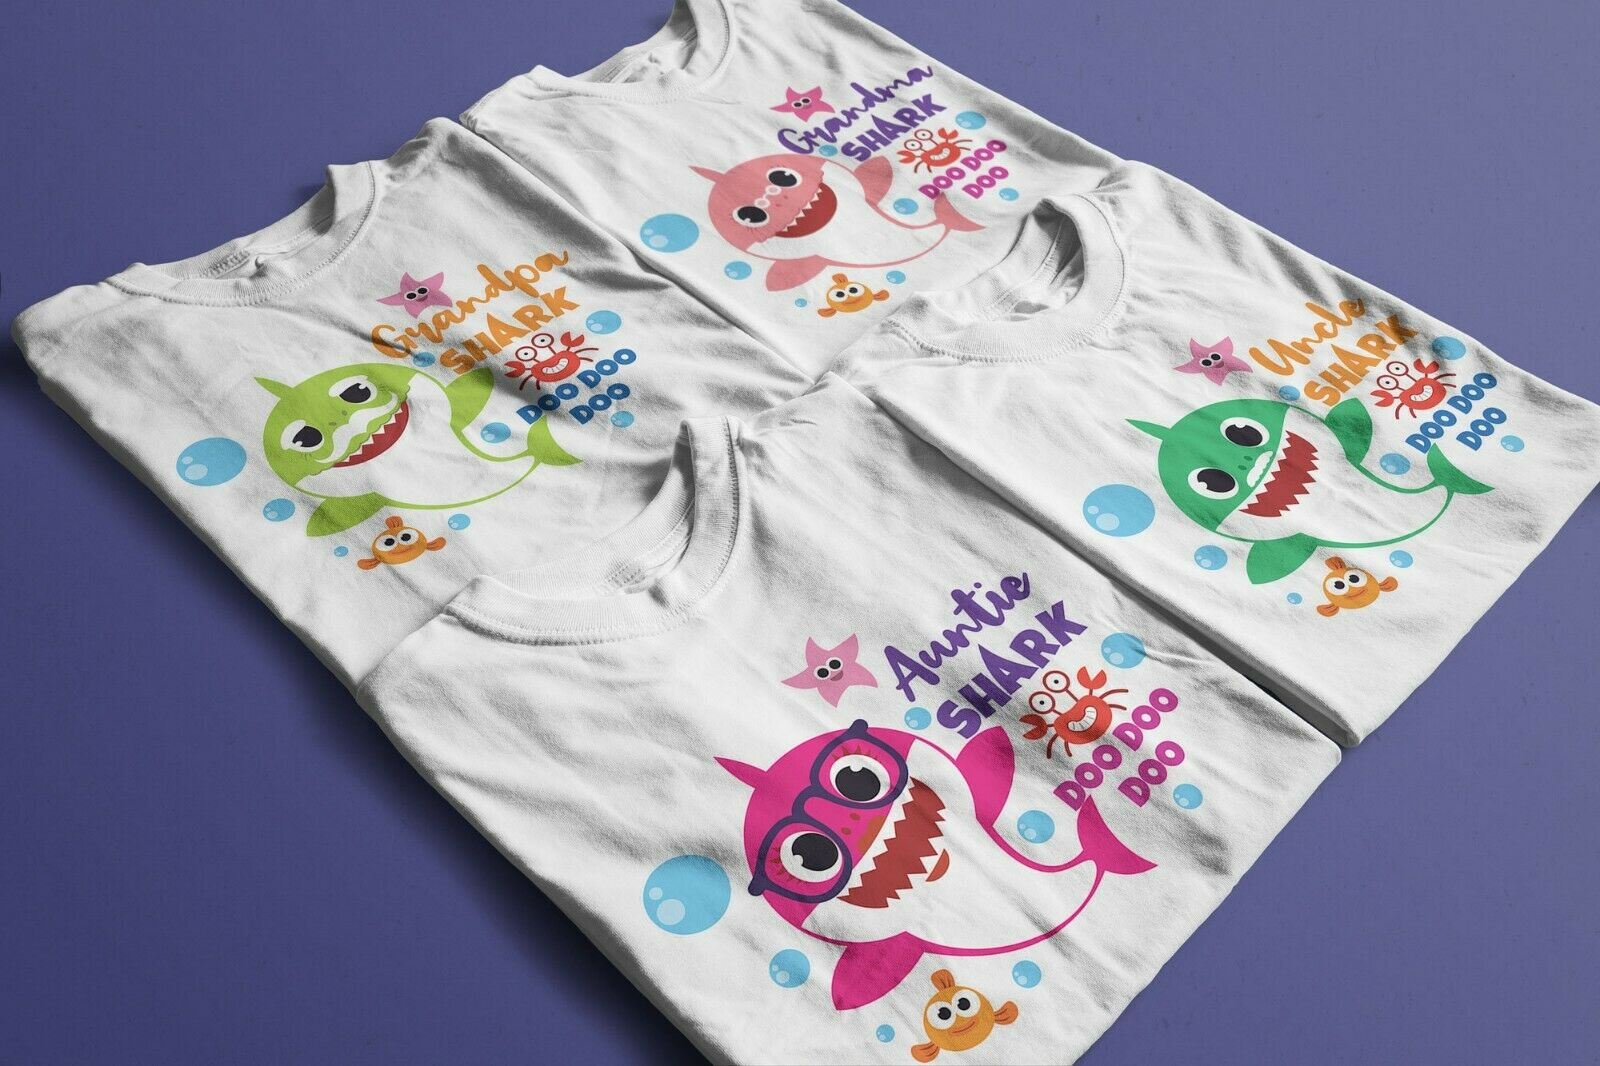 baby shark family shirts daddy and me shirt family matching shirt Baby Shark Matching family t-shirt fashion t-shirt mommy and me shirt